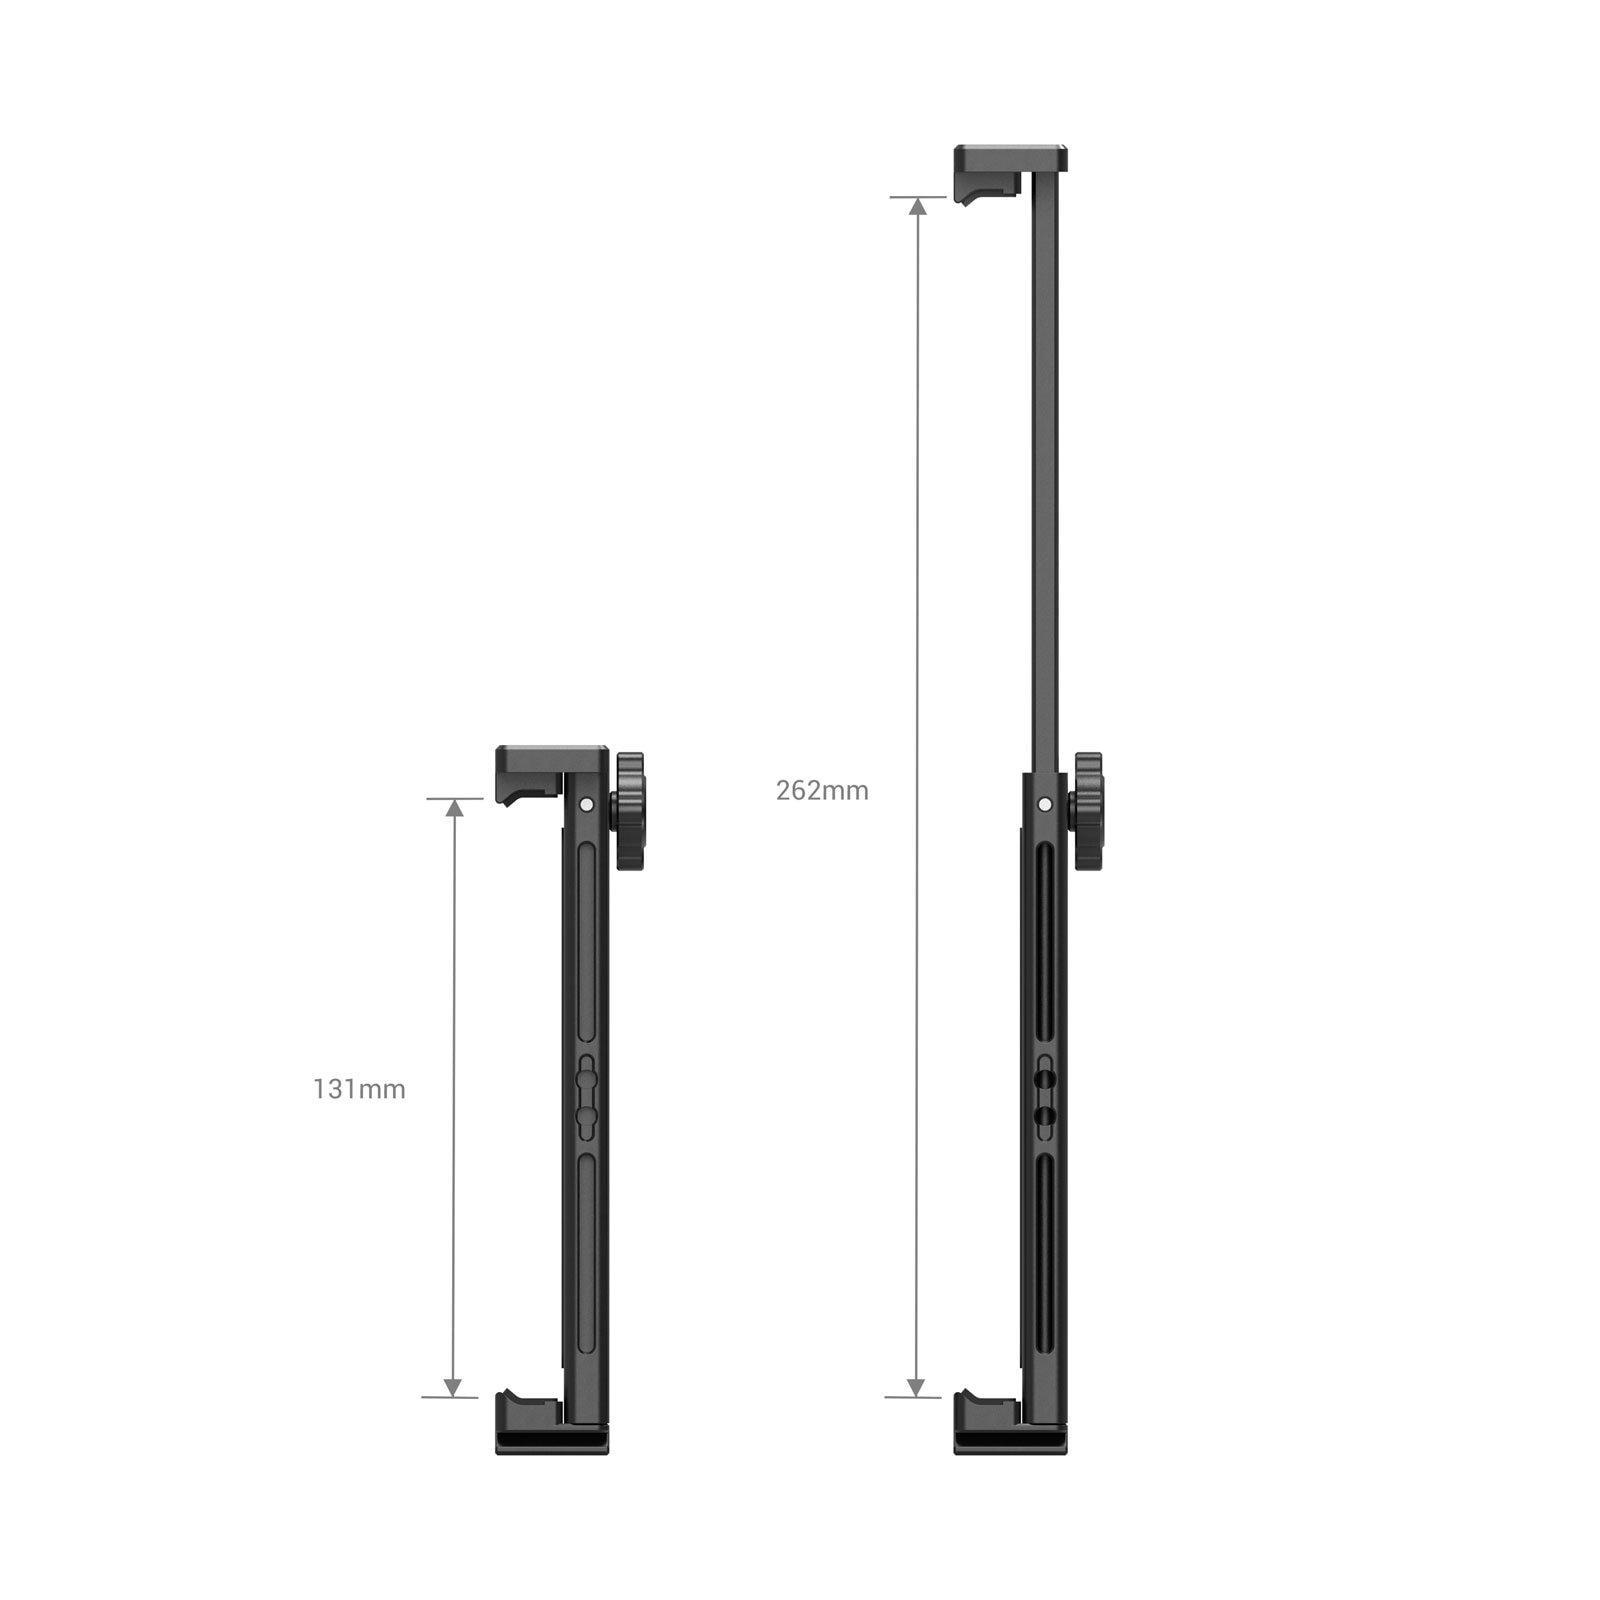 """SmallRig Tablet Metal Holder with Dual Handgrip for iPad Tripod Mount Adapter for iPad Mini Air Pro Surface Pro (7.9"""" to 12.9"""") enlarge"""